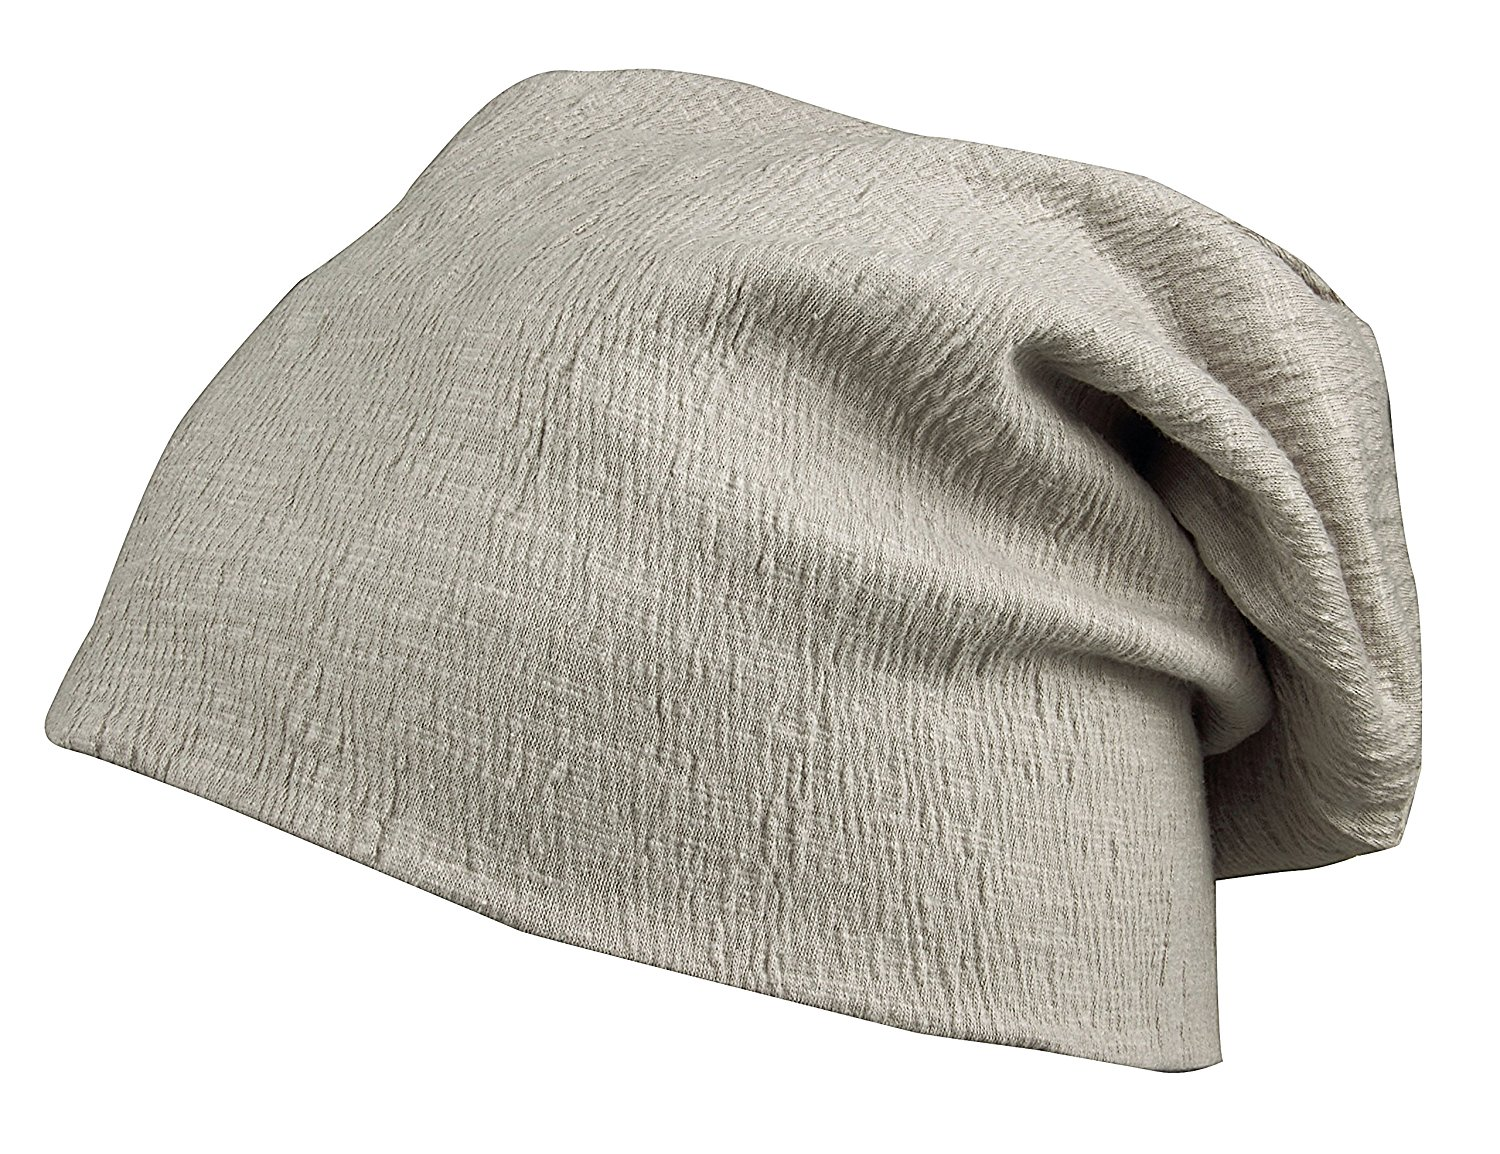 15903c90a1d Get Quotations · Chemo Caps for Women or Men - Double Layered Breathable Cotton  Chemo Hats - Soft Comfy